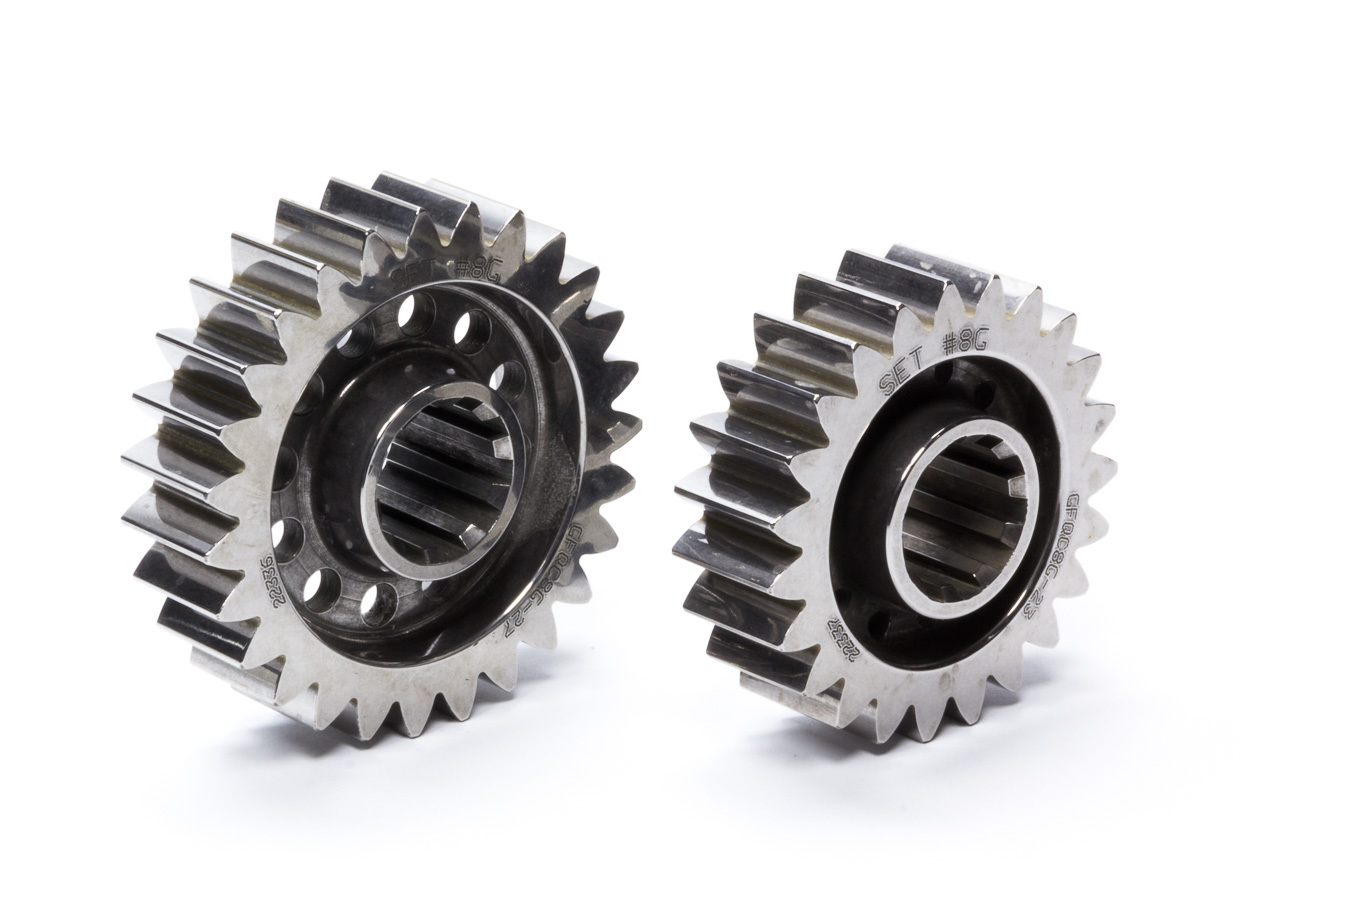 Diversified Machine FFQCG-8G Quick Change Gear Set, Friction Fighter, Set 8G, 10 Spline, 4.12 Ratios 4.84 / 3.51, 4.86 Ratios 5.71 / 4.14, Steel, Each